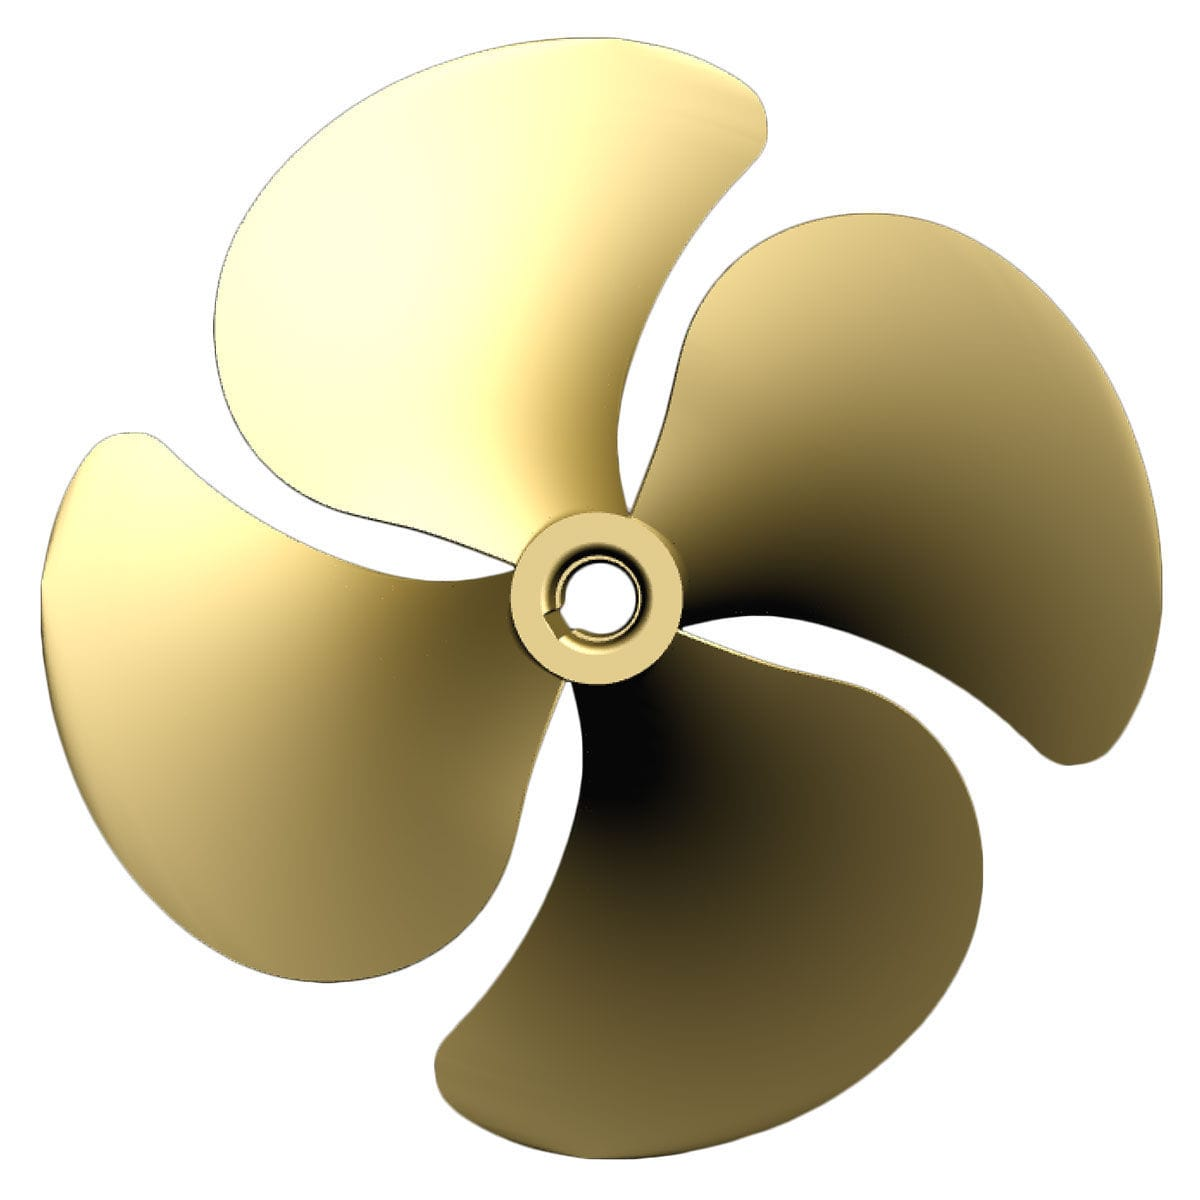 Ship propeller / for yachts / skew / fixed.